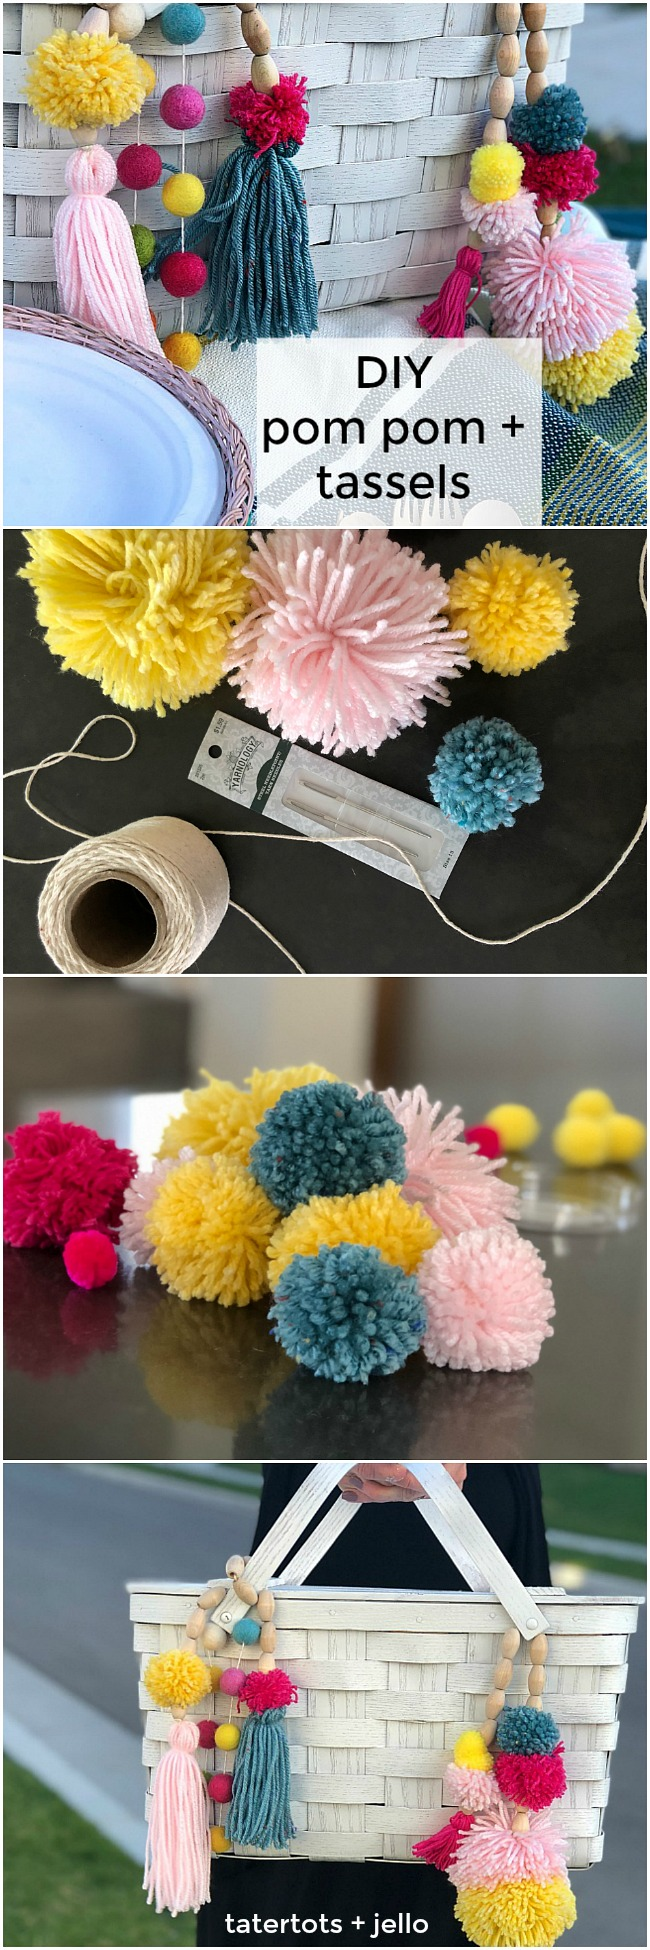 Thrifted BOHO Pom Pom Picnic Basket Makeover! Give a thrifted picnic basket new life and a boho spring makeover with spraypaint and yarn. I will show you how to make BOHO beaded embellishments that will make your new picnic basket shine!